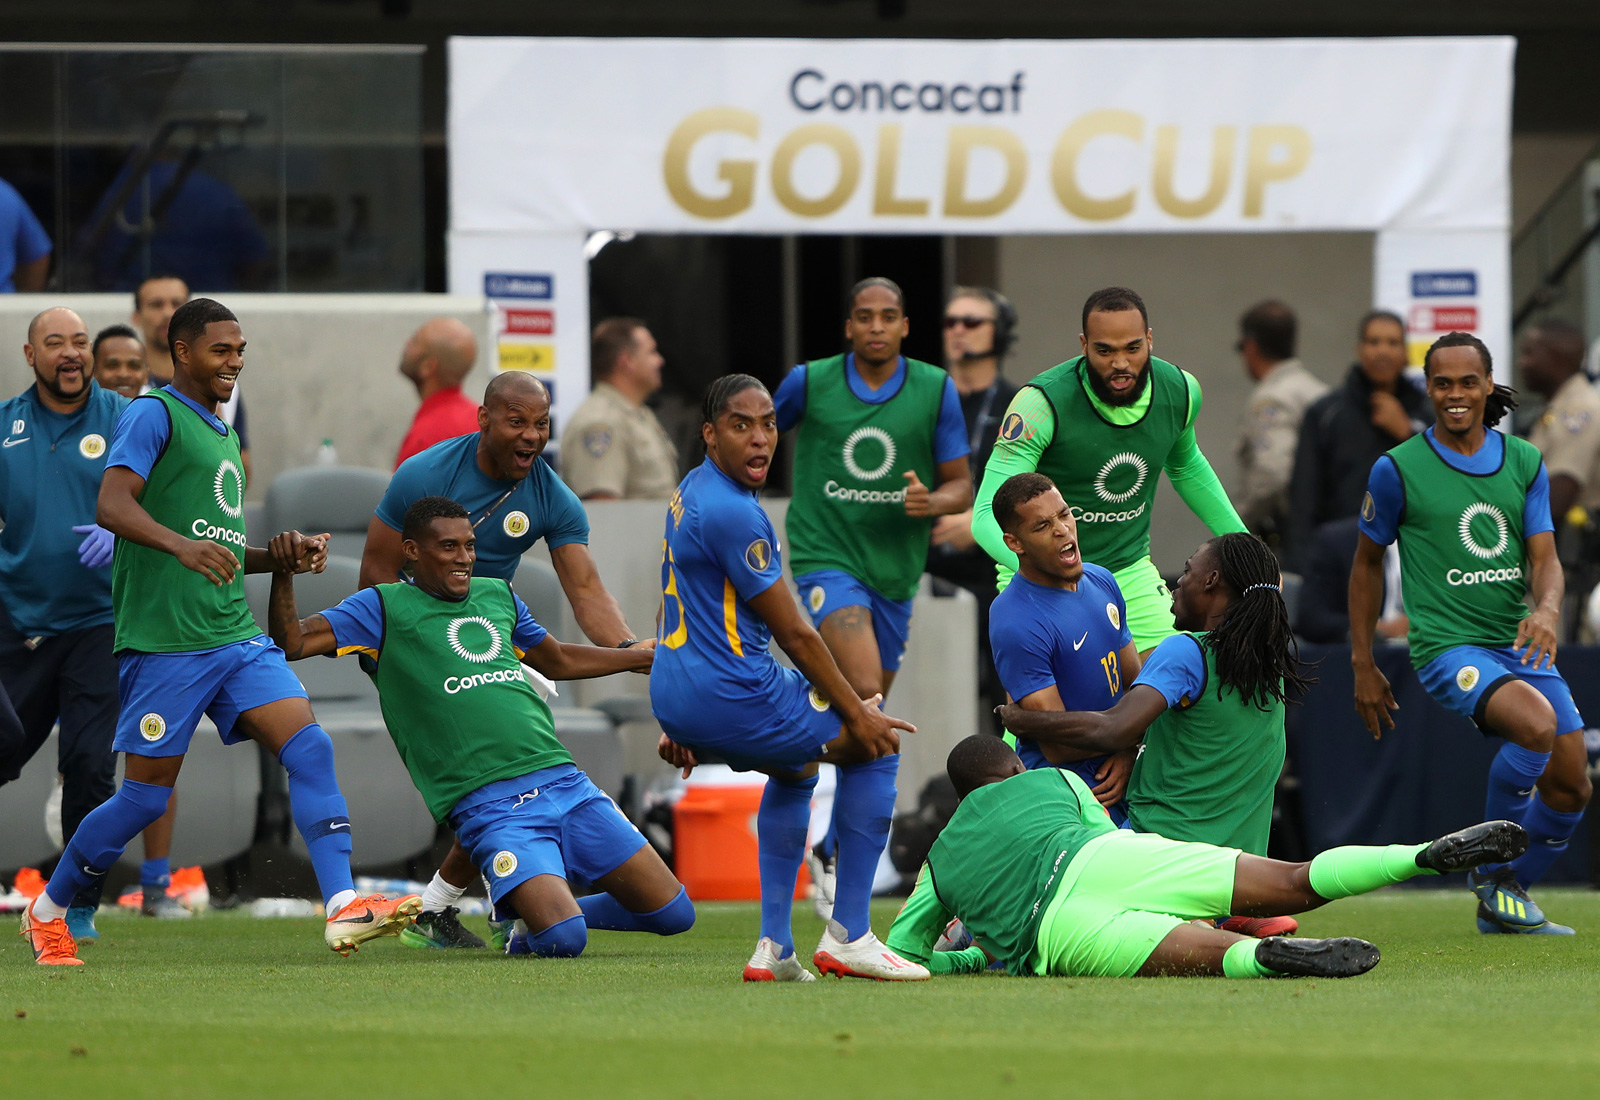 Curacao is through to the Gold Cup quarterfinals